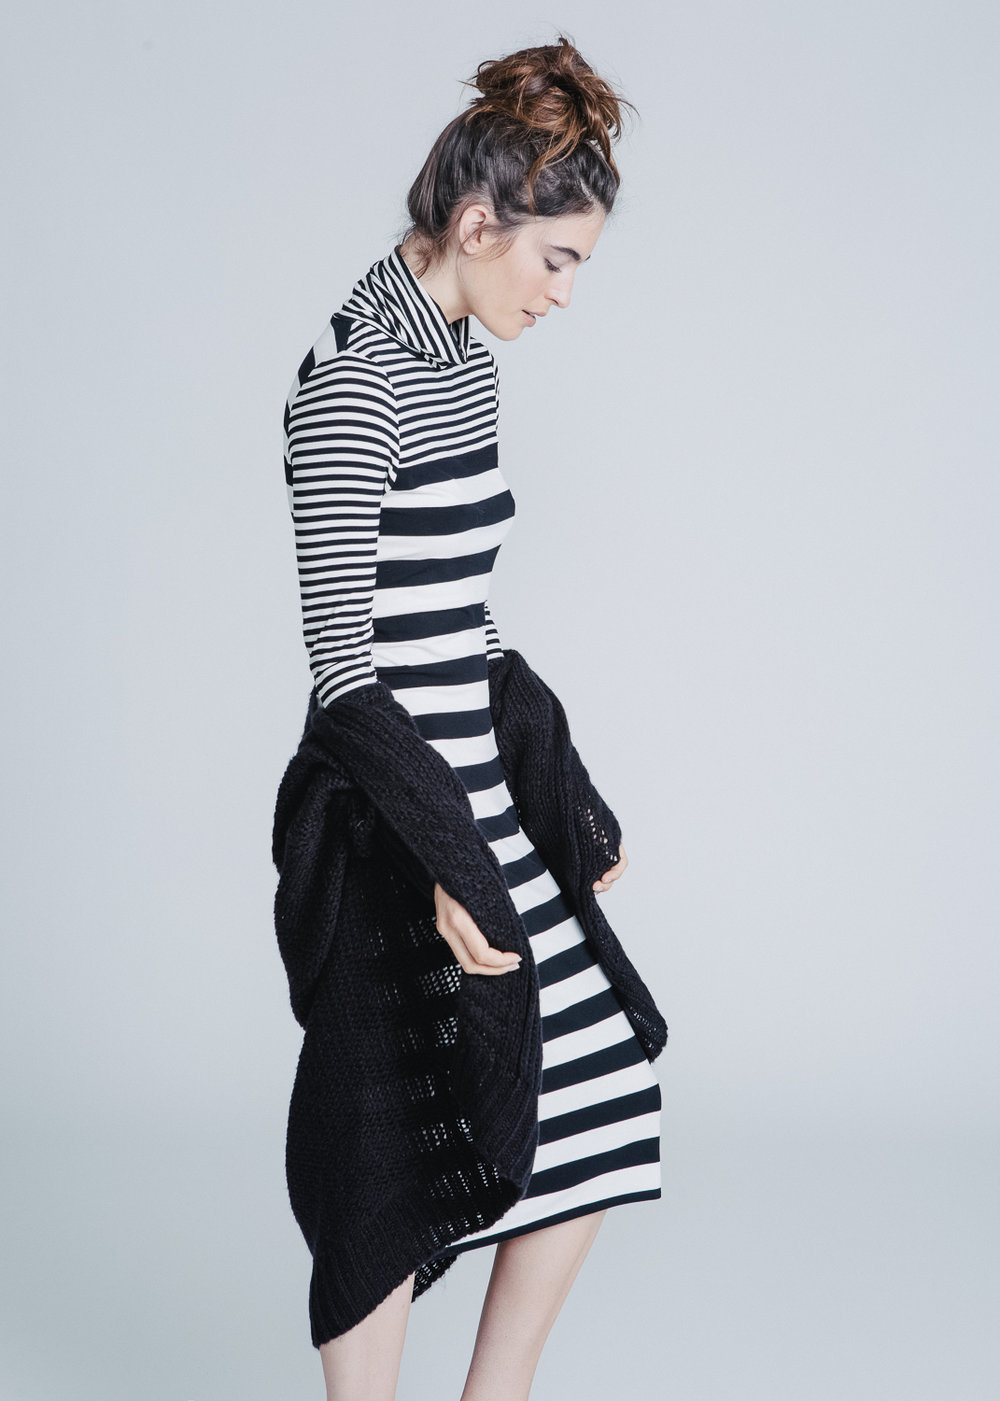 Press-SS16-42-Edit.jpg